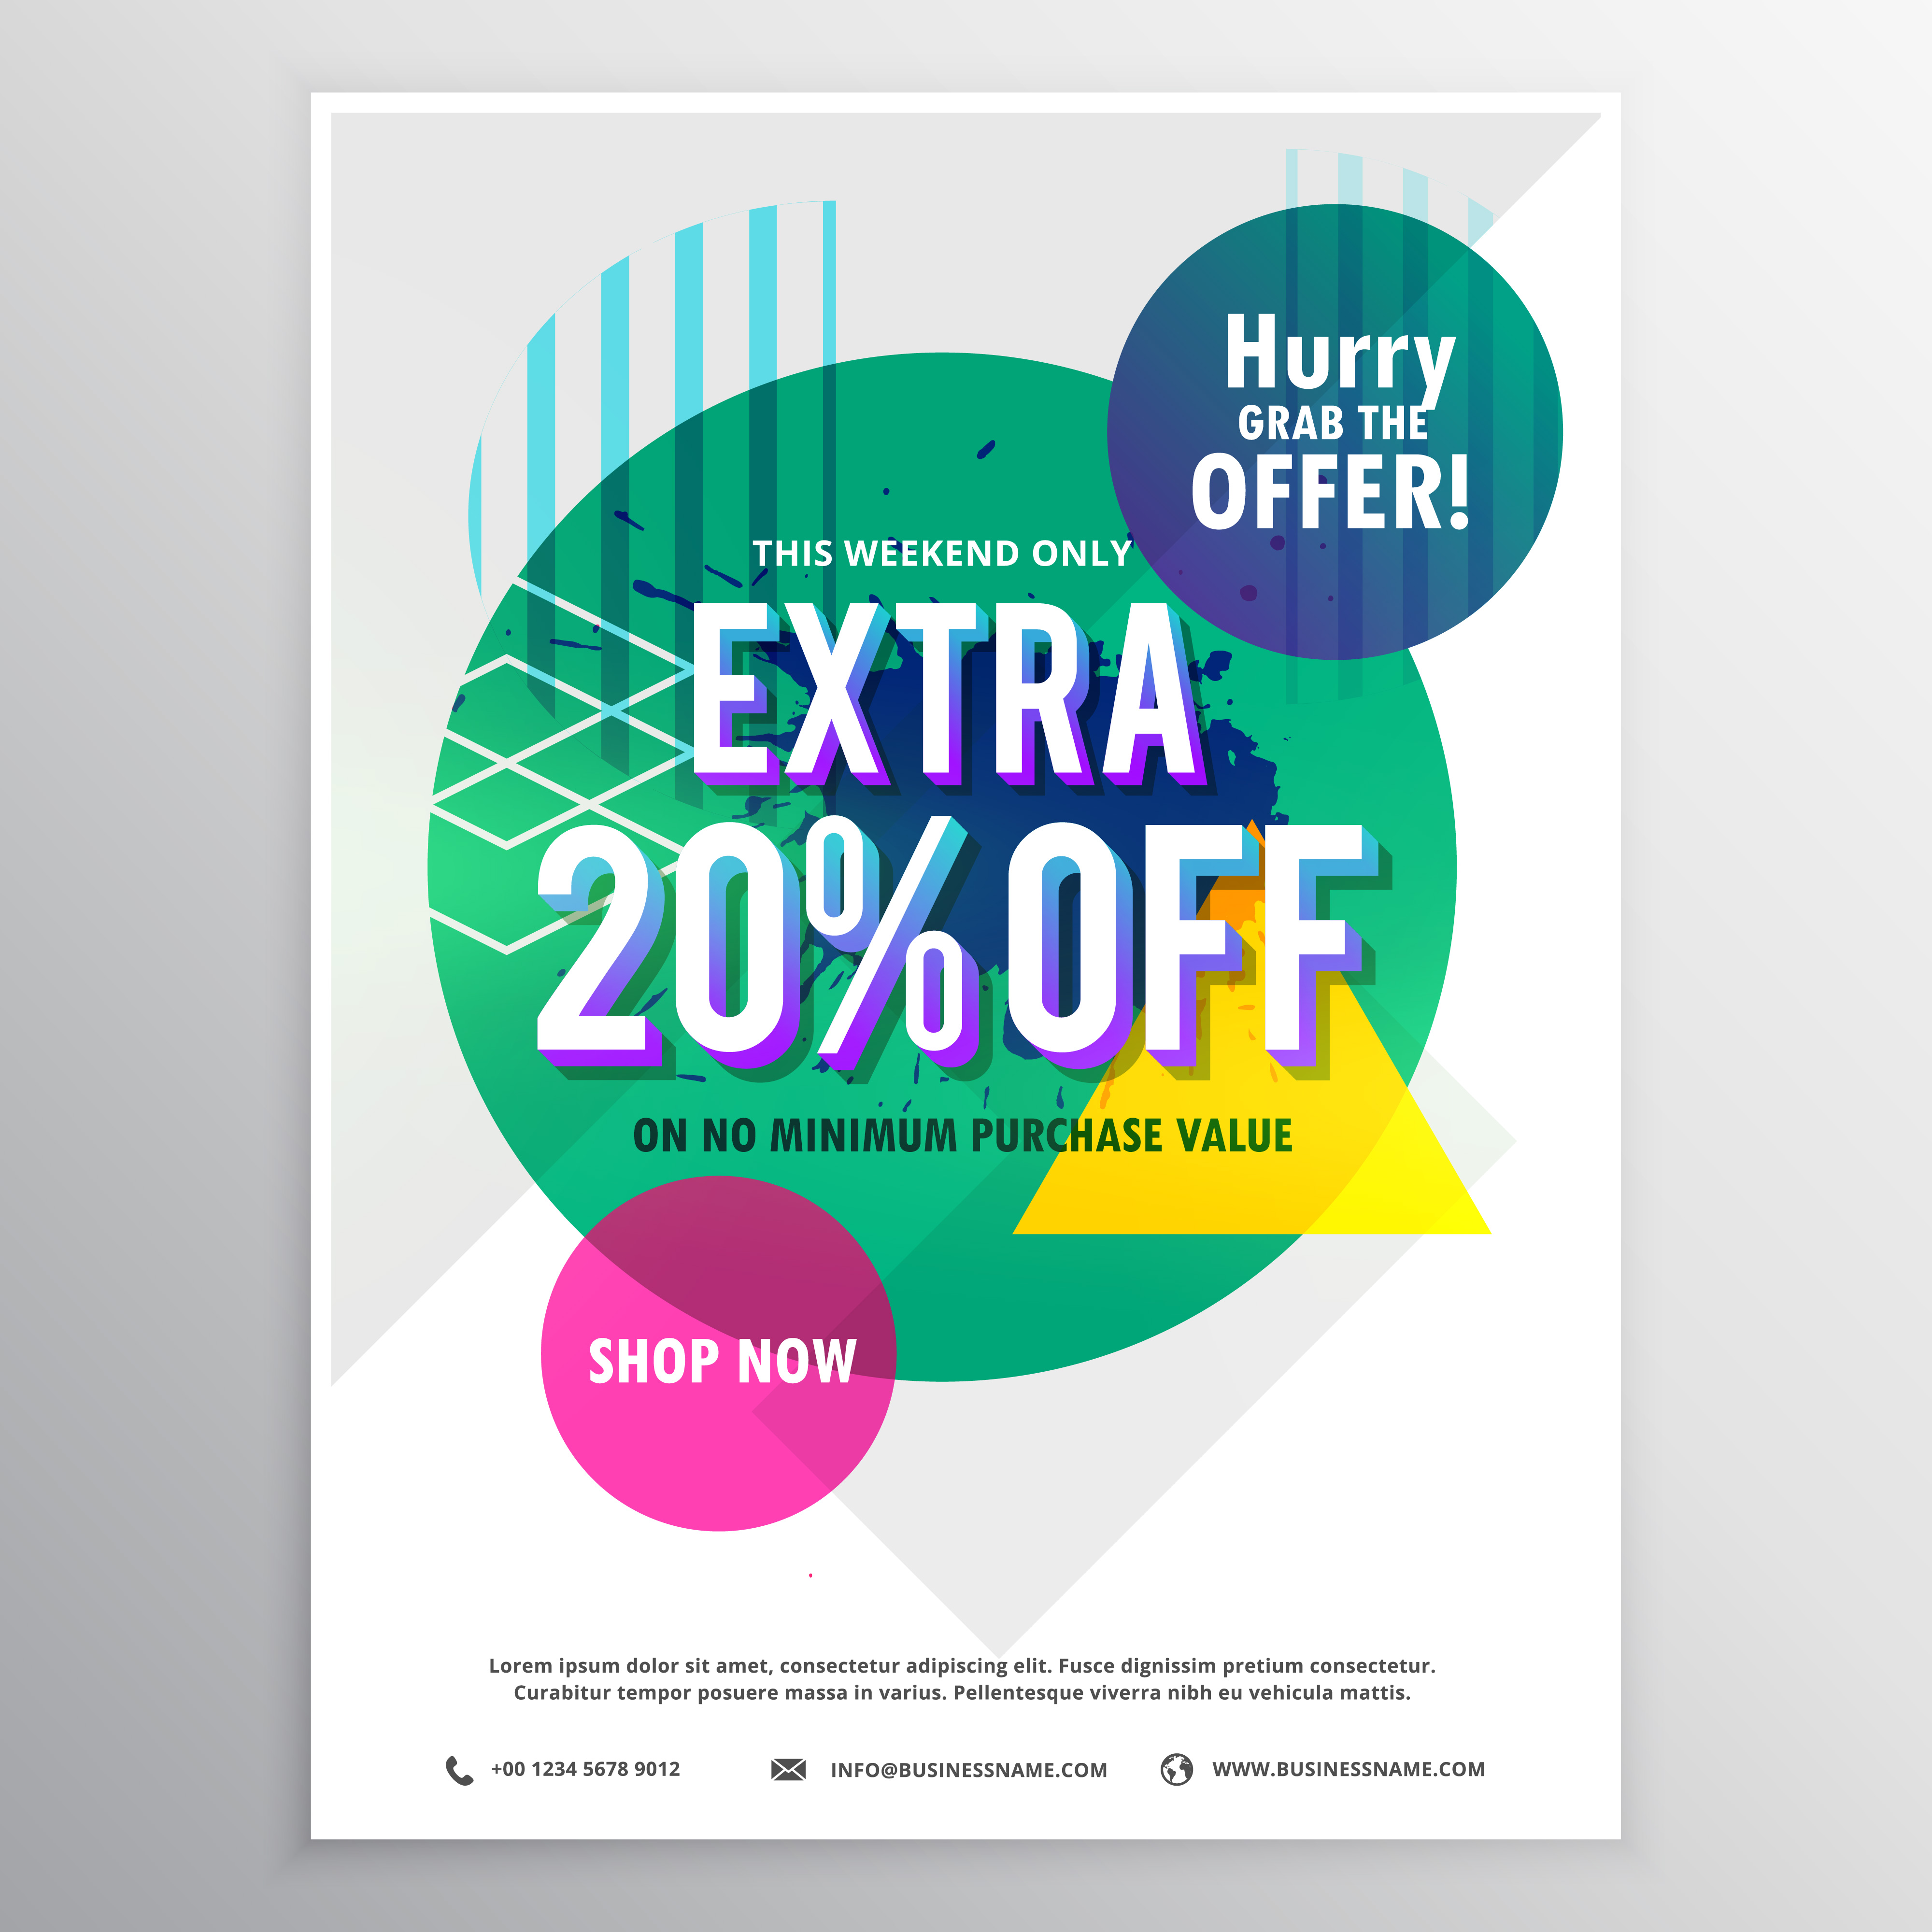 Modern Promotional Flyer Template With Discount And Offer With A